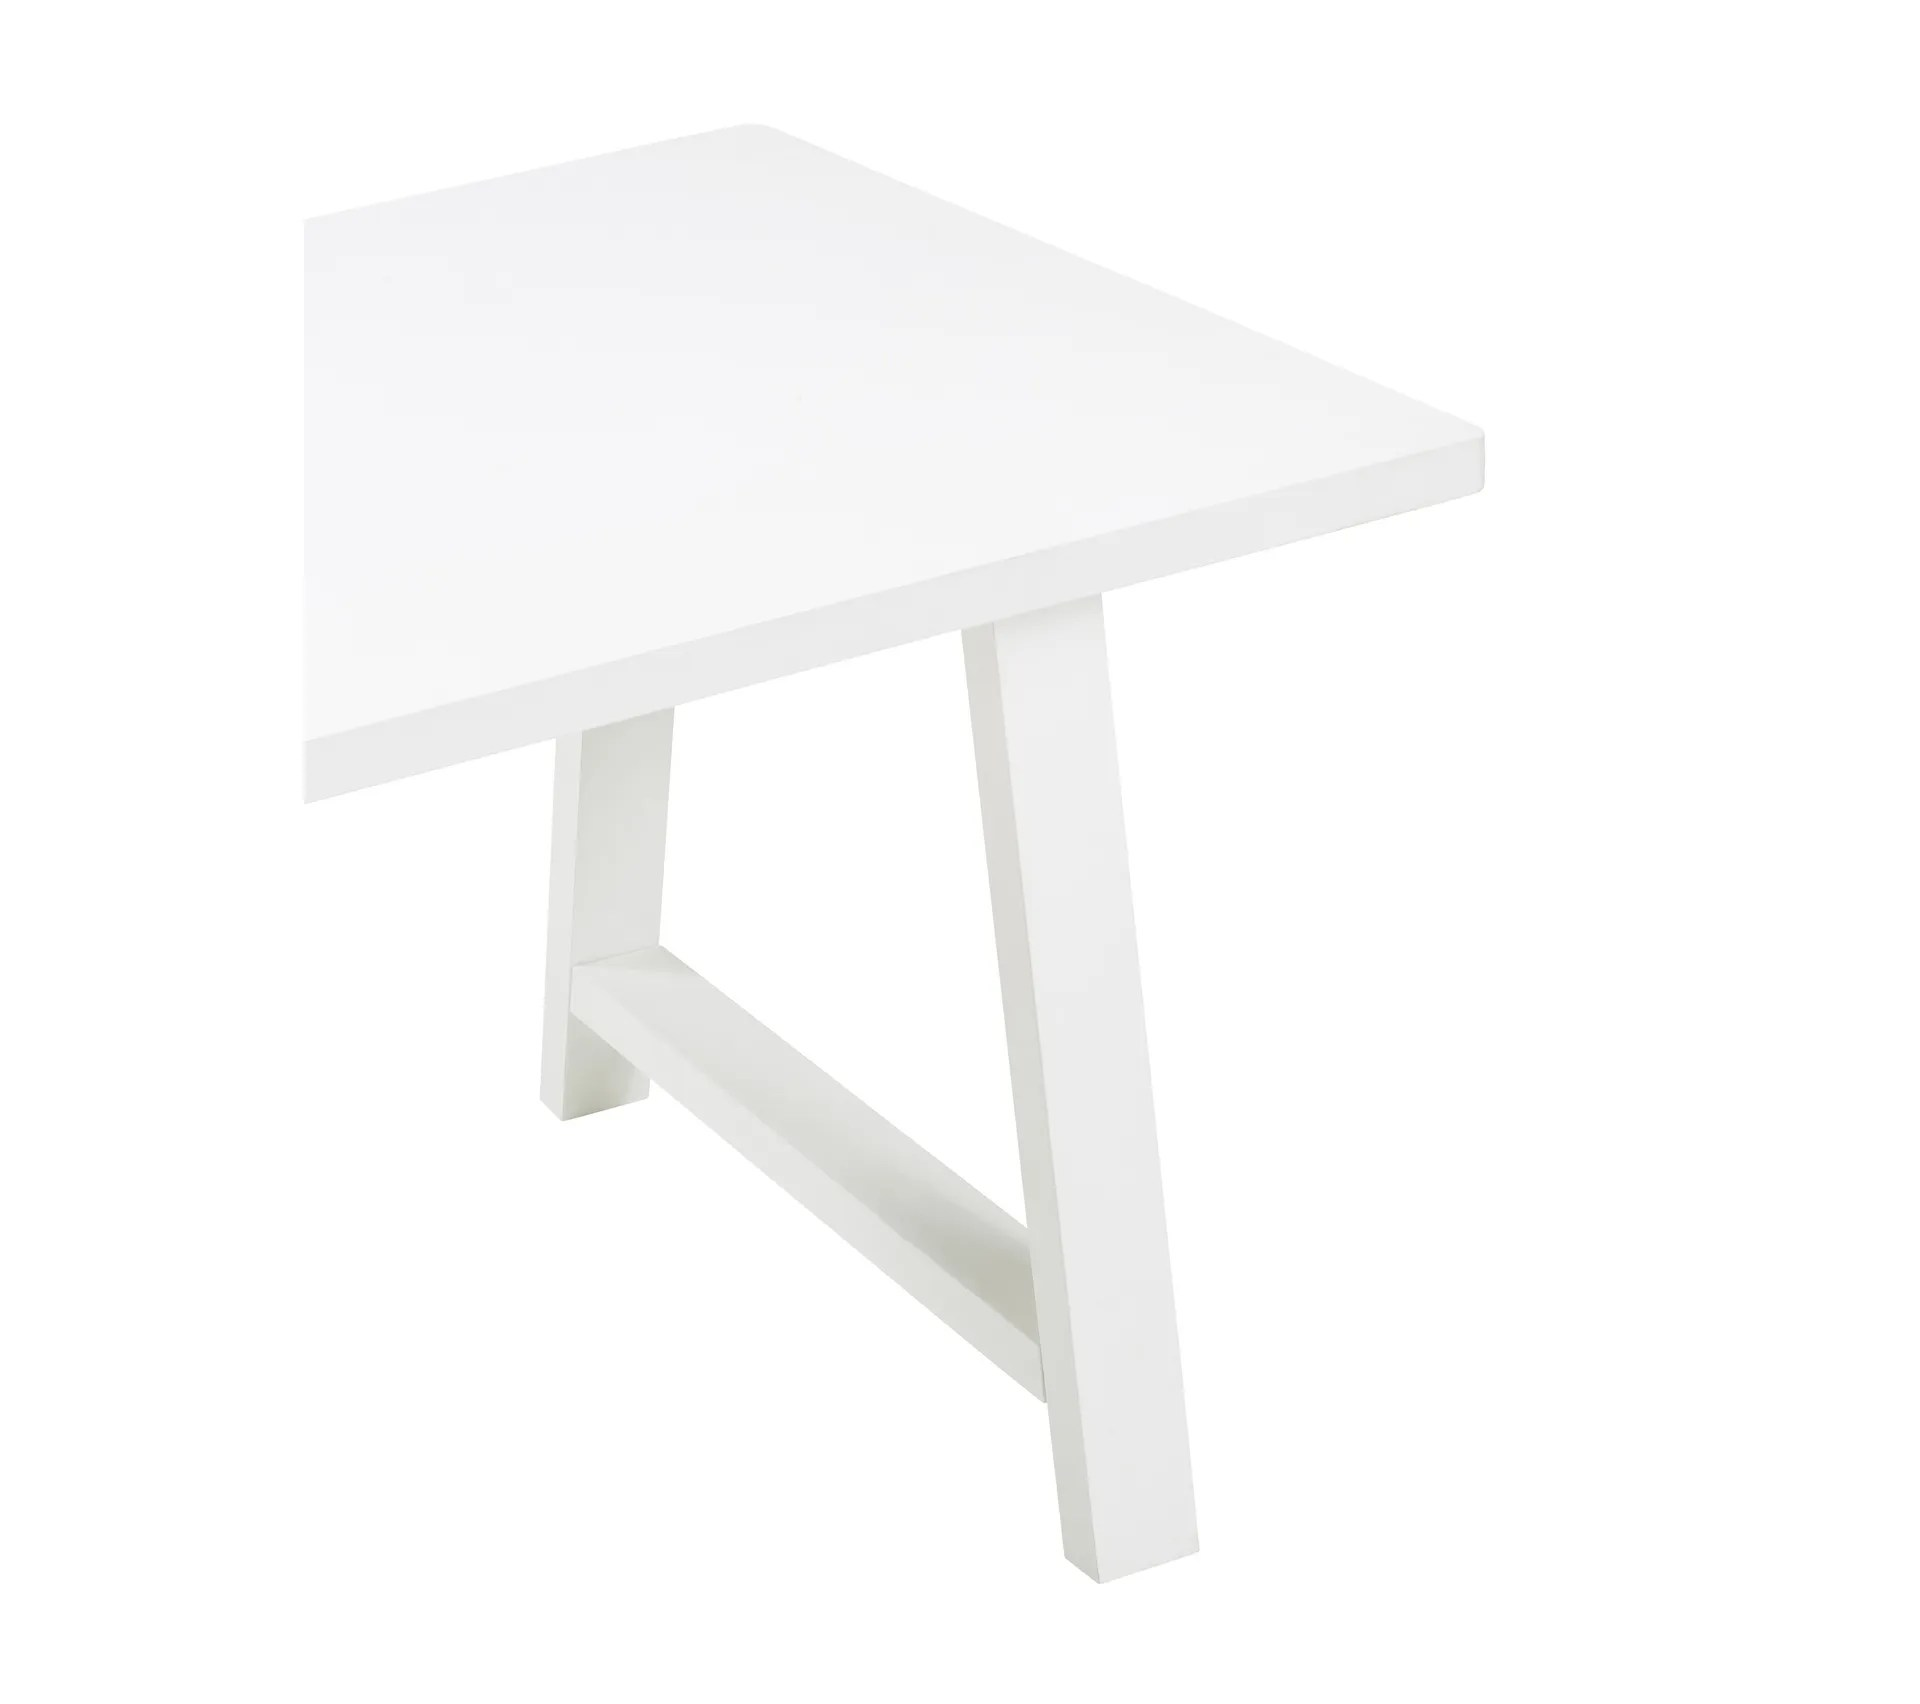 table l 180 rectangulaire prisca blanche